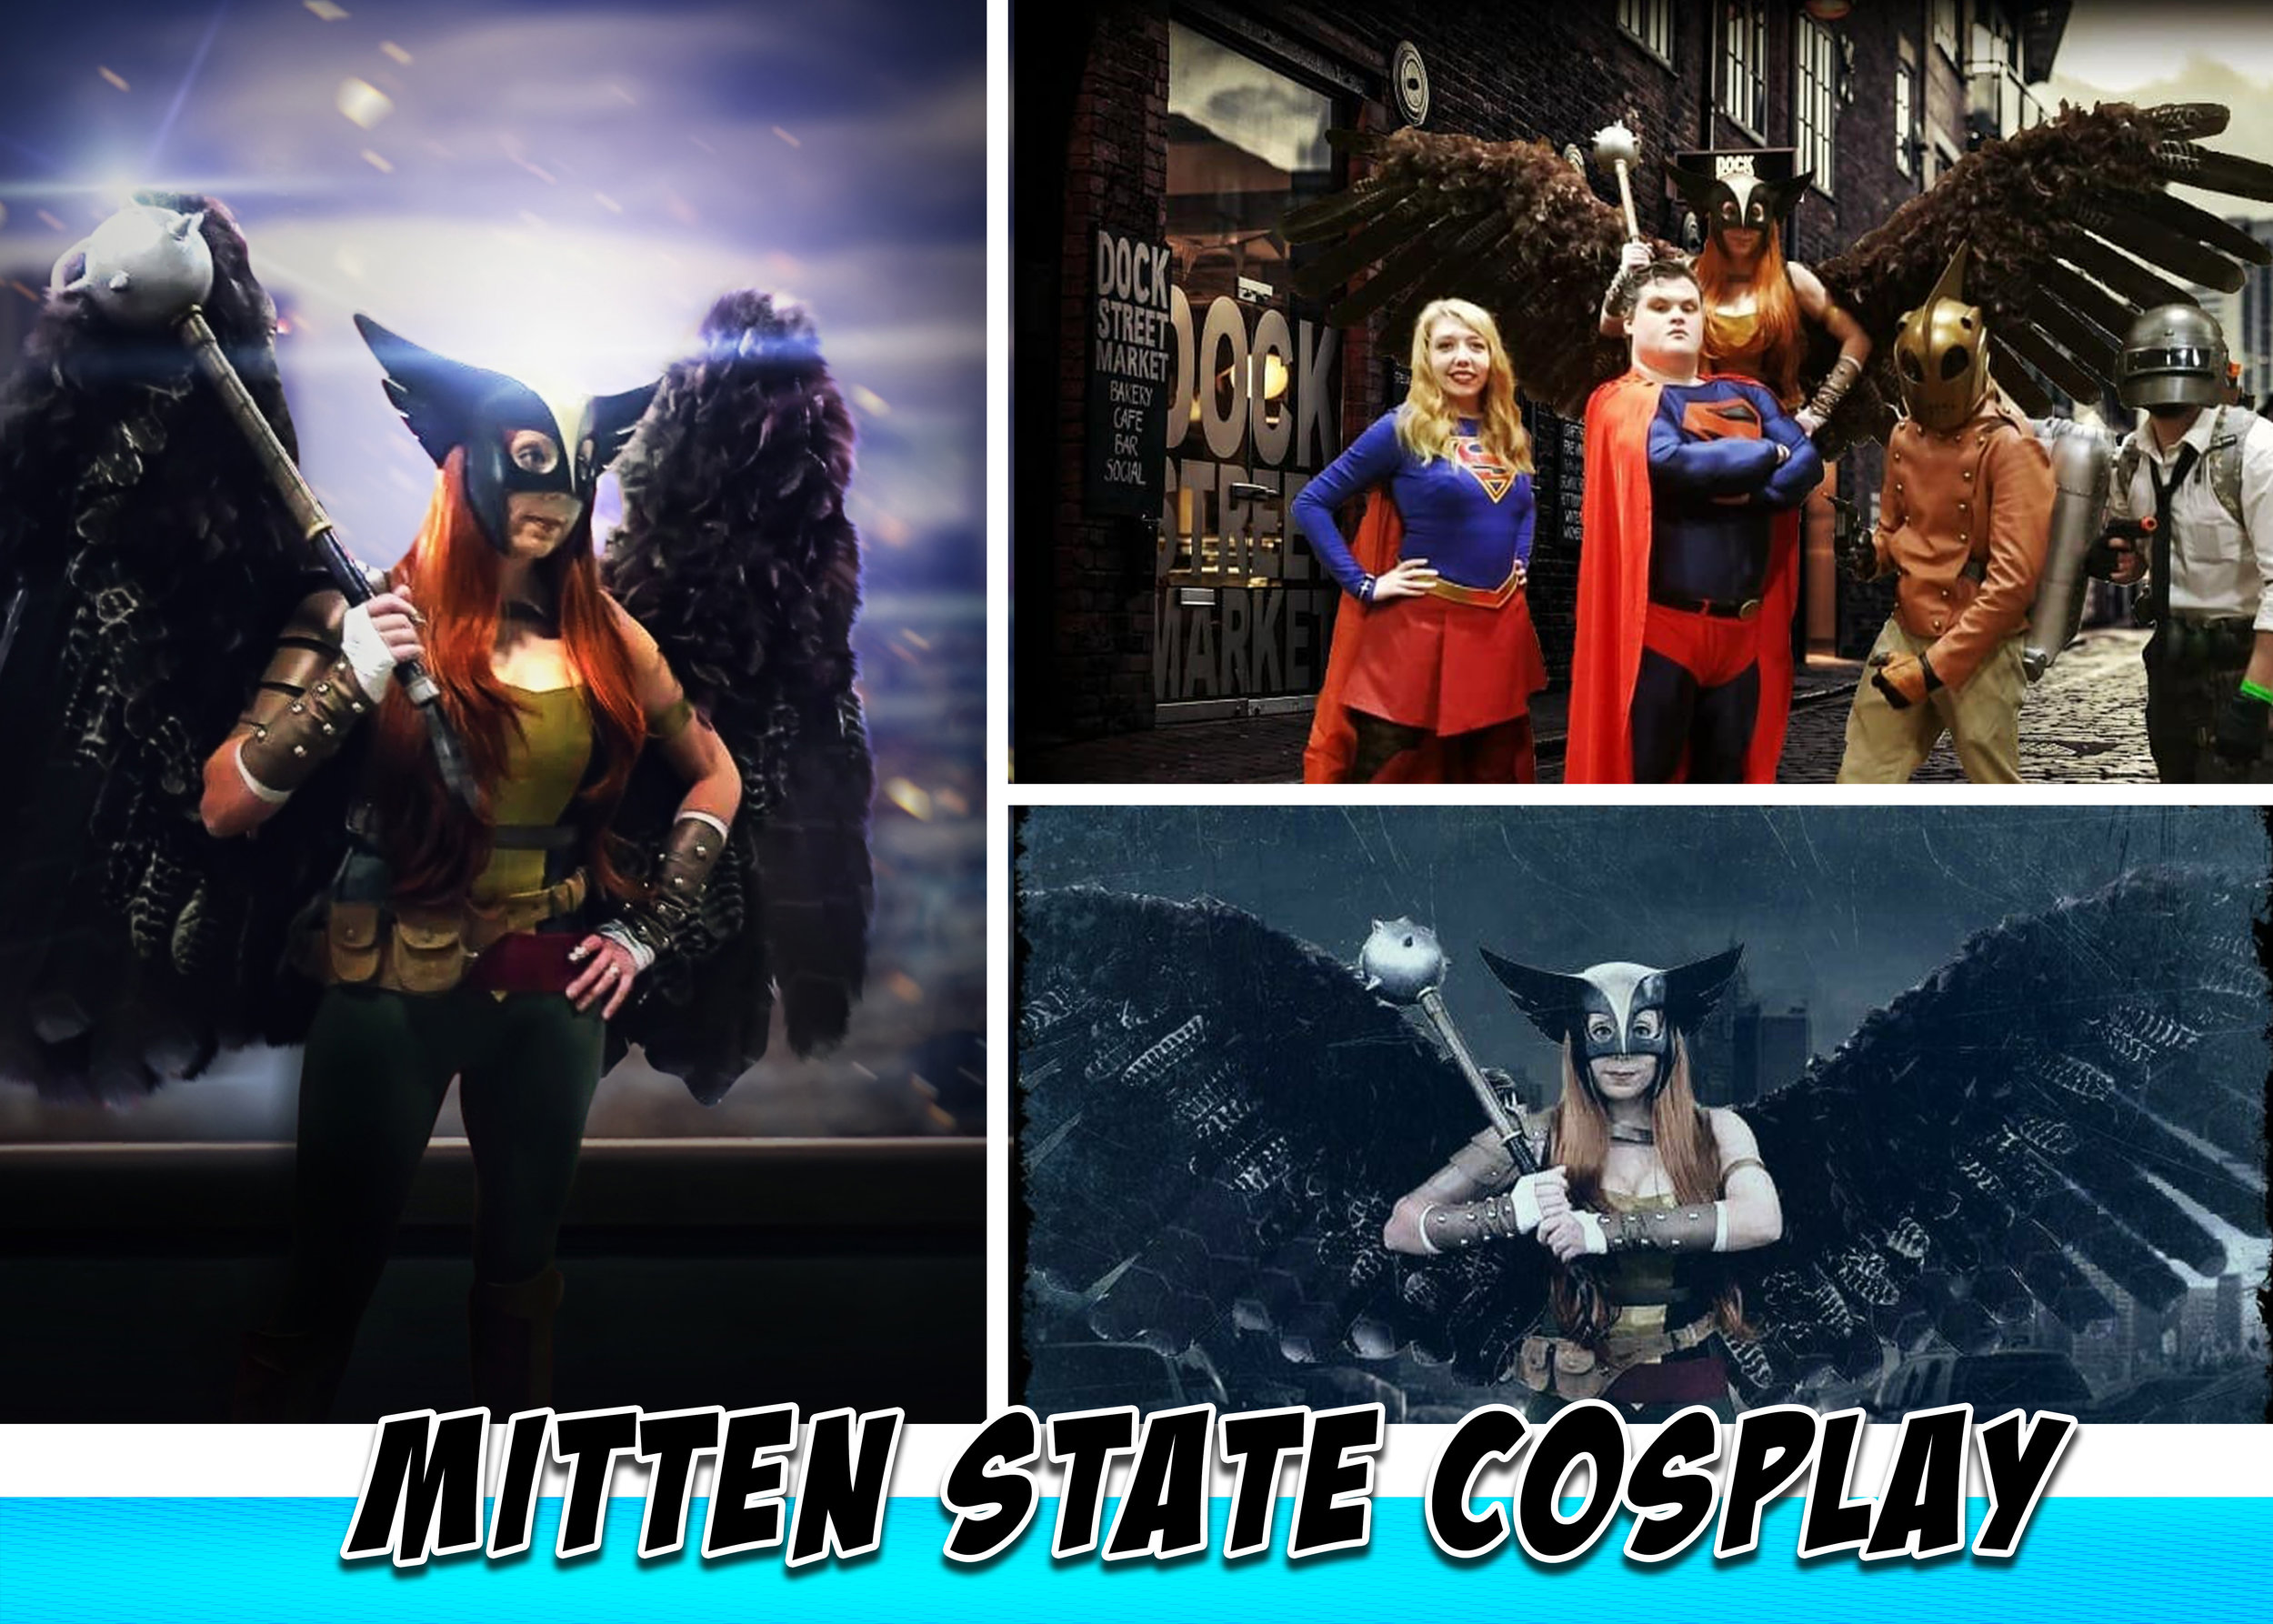 Mitten State Cosplay - I'm Stephanie Bulszewicz from Mitten State Cosplay. I'm a Michigan native & Howell's my hometown.  I'm a huge DC & Marvel fan. I've always  been a Halloween enthusiast, crafter/builder. So when my sister introduced me to cosplay in 06' it was a natural fit for me.  I've cosplayed Black Canary, Poison Ivy, Killer Frost, Genderbend Punisher & my favorite... Hawkgirl. I prefer to make as much as my own cosplays as possible. I'm best known for my Hawkgirl cosplay. It features a huge 11ft. articulating wingspan. So far this I've been featured by- The Detroit NewsThe Detroit Free PressMLive News  (2x)MotorCity GeekInterview with Comics Beer & Sci-fi-https://youtu.be/F8a6drqKKLk